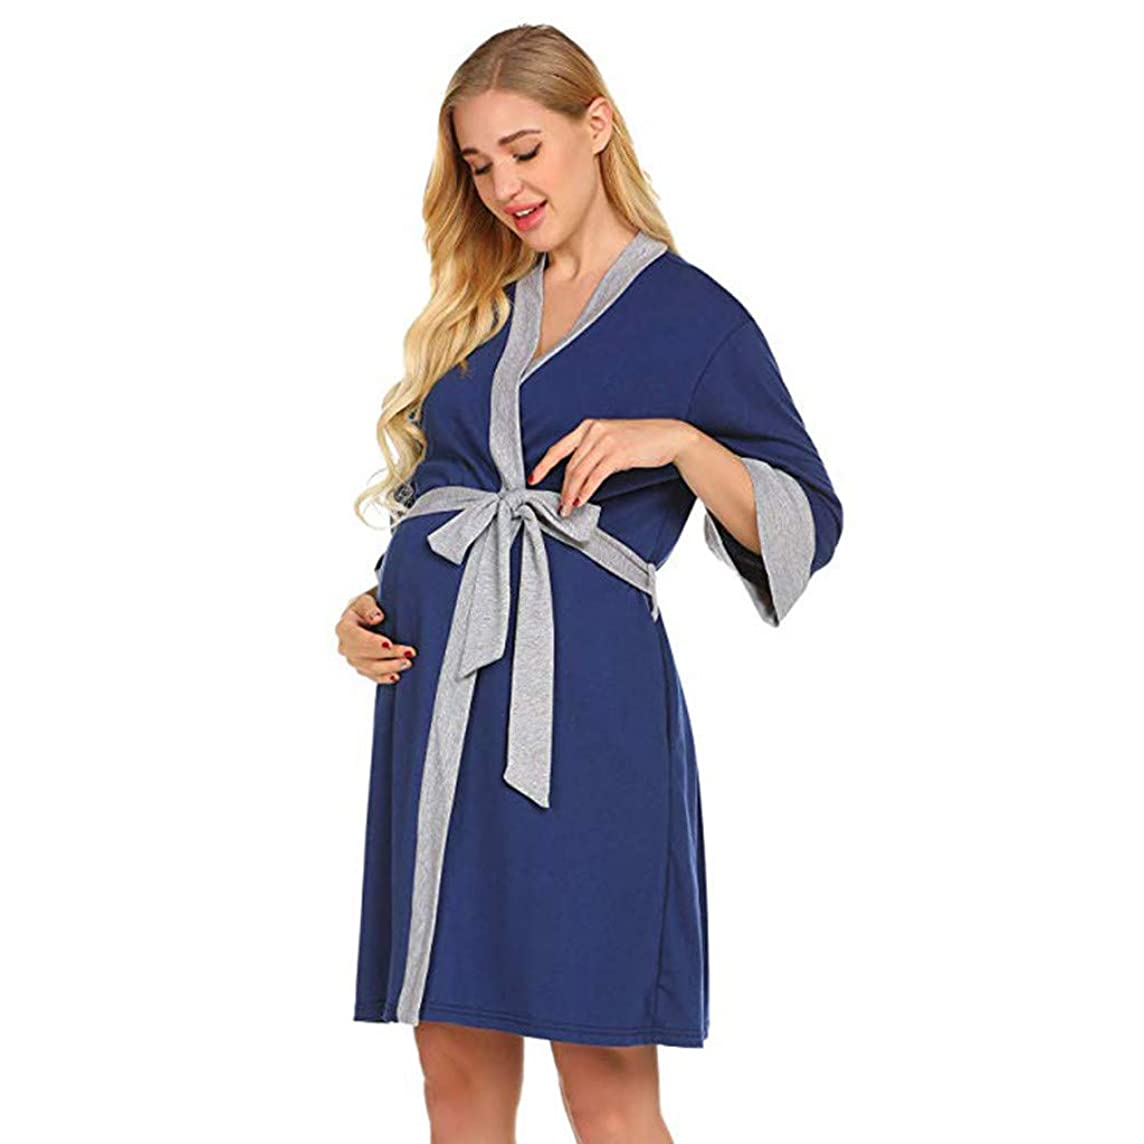 Dacawin_Maternity Blouse Maternity Nursing Robe,Women Delivery Nightgowns Breastfeeding Gown Comfortable Soft Dress